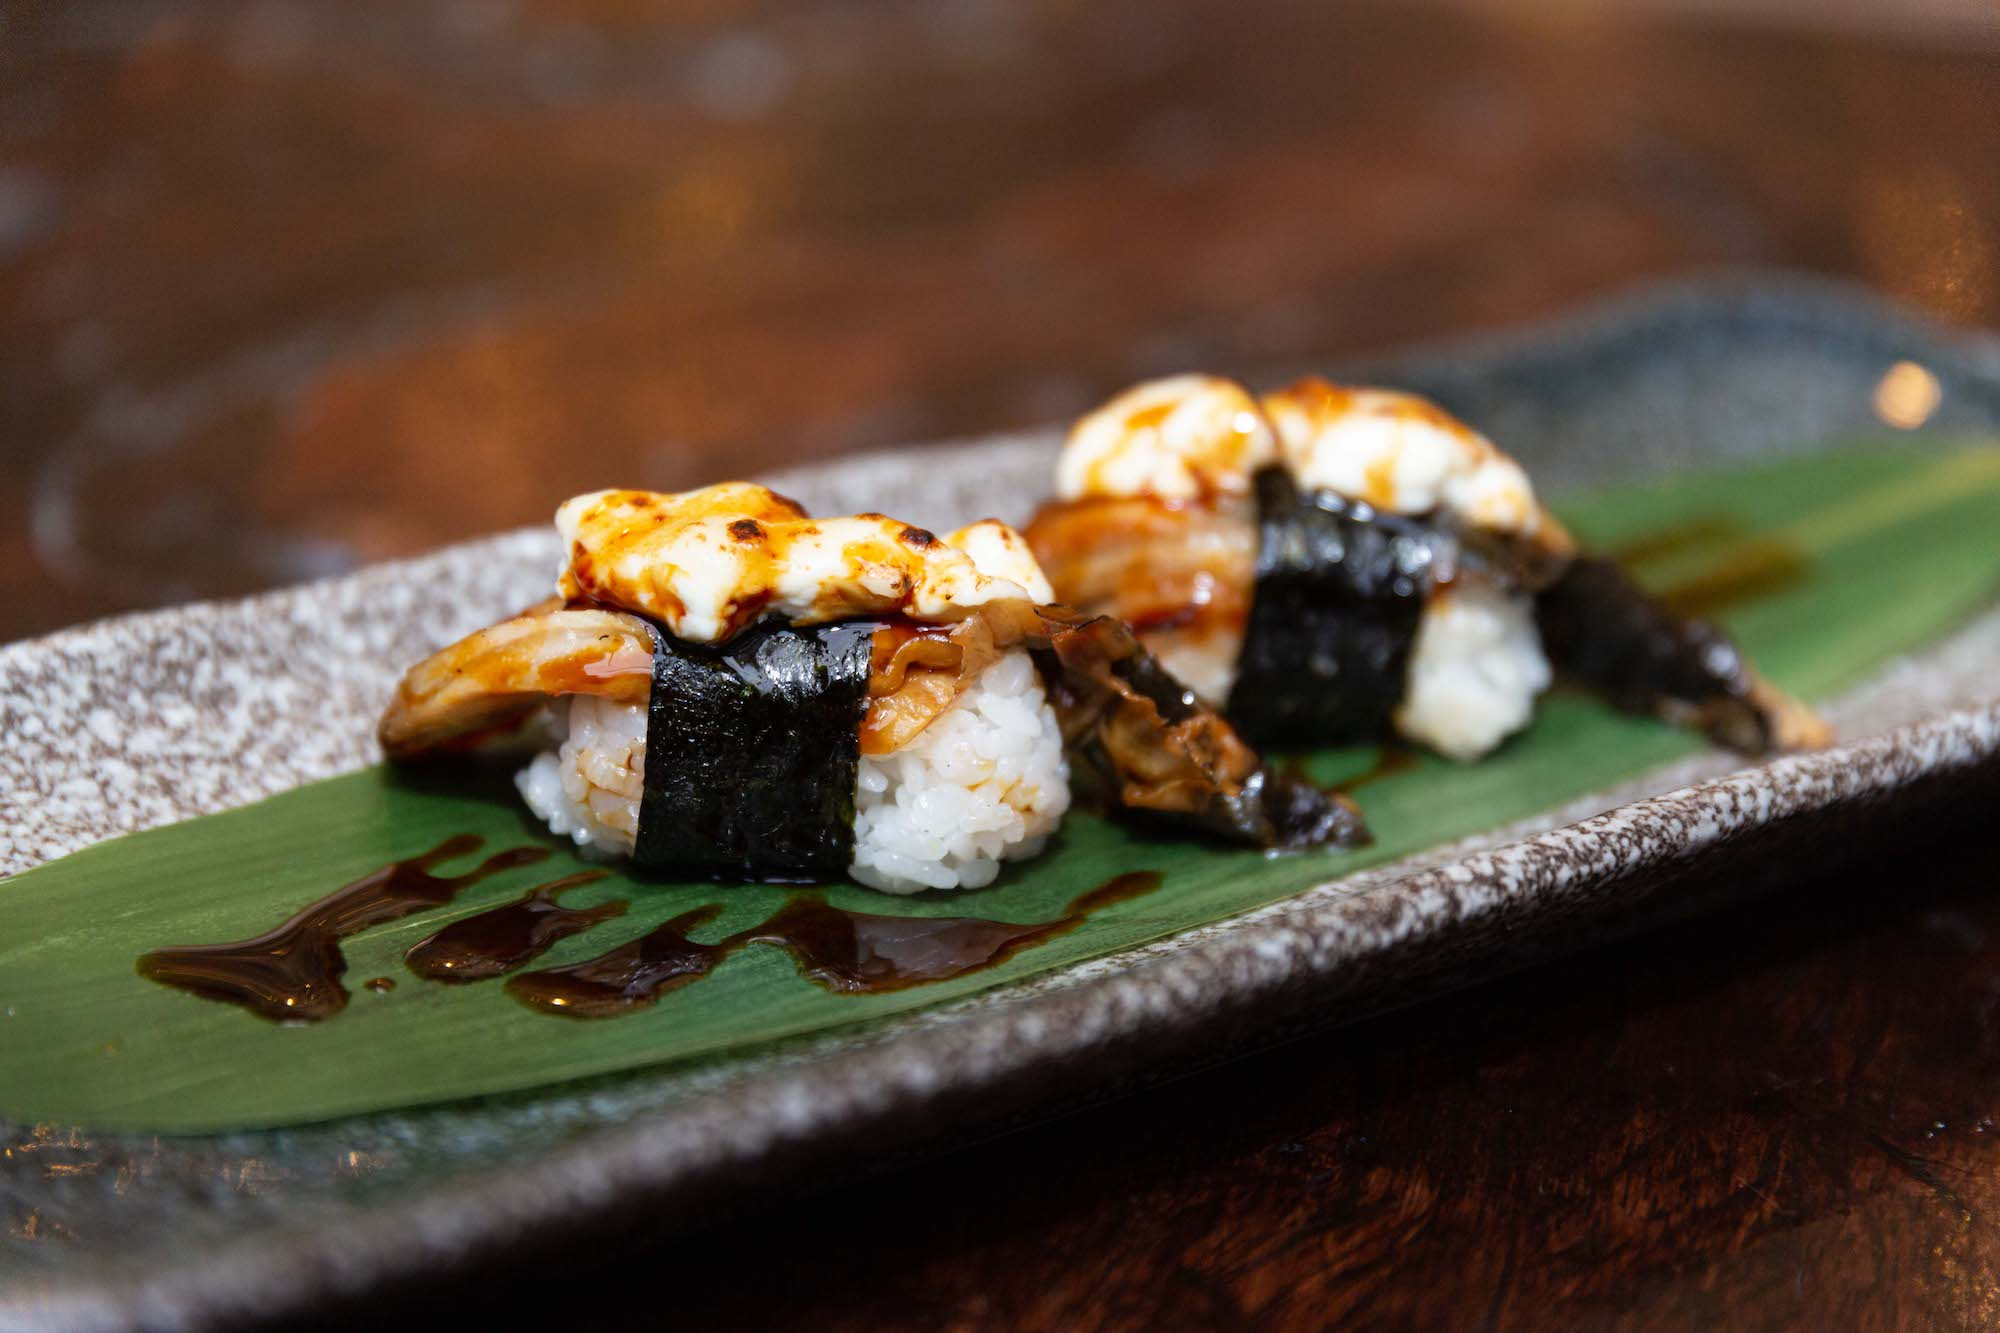 Grilled eel nigiri with goat's cheese